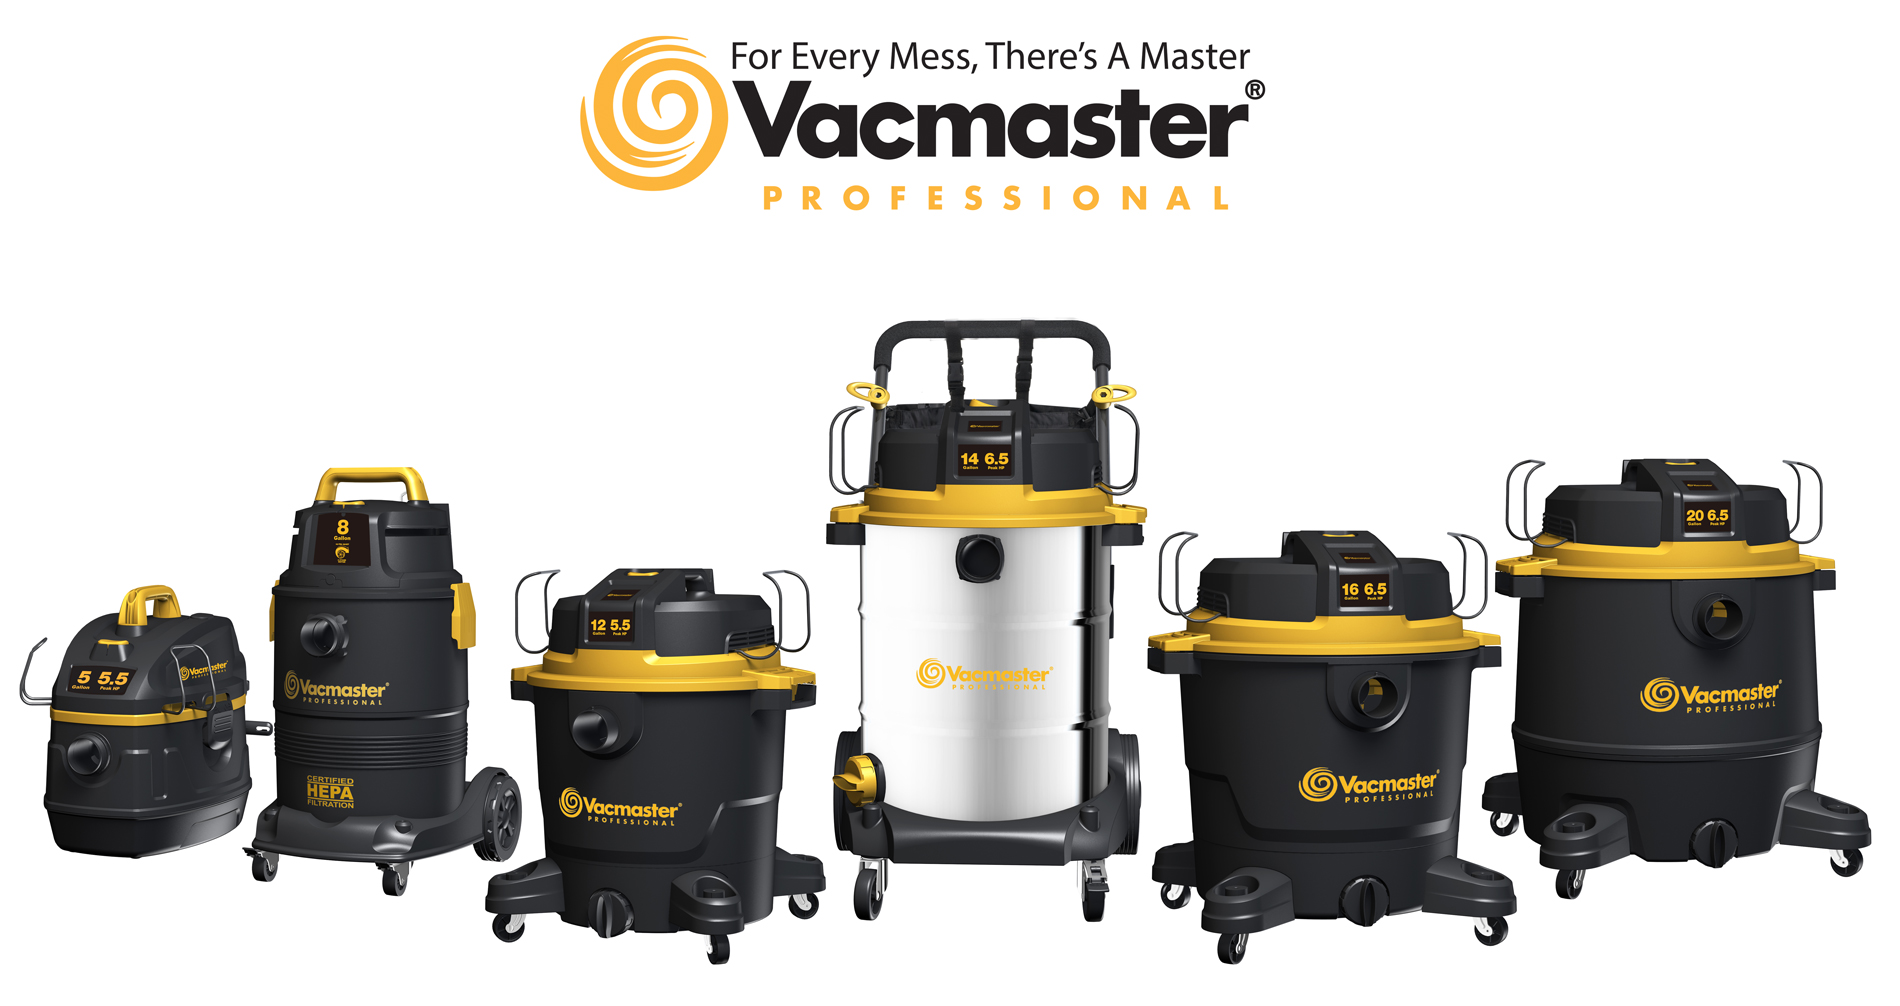 vacmaster-professional-the-beast-series-lineup-with-logo.jpg